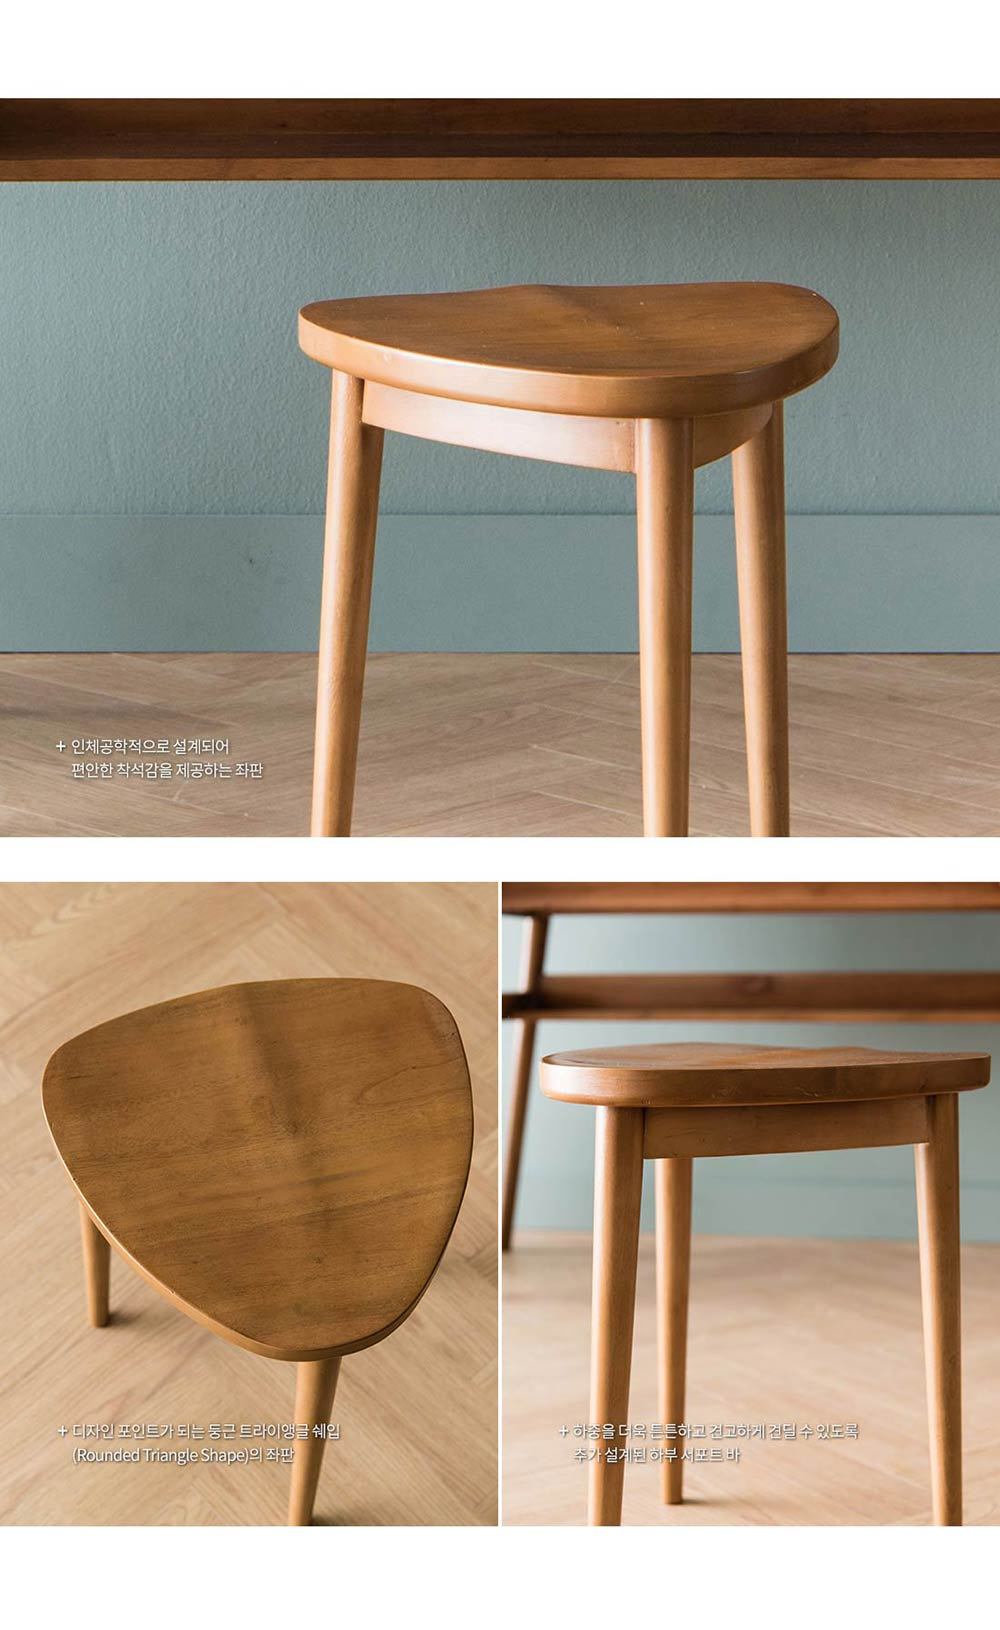 New_Retro_Stool_Furniture_Online_Singapore_Scenery_2_by_born_in_colour